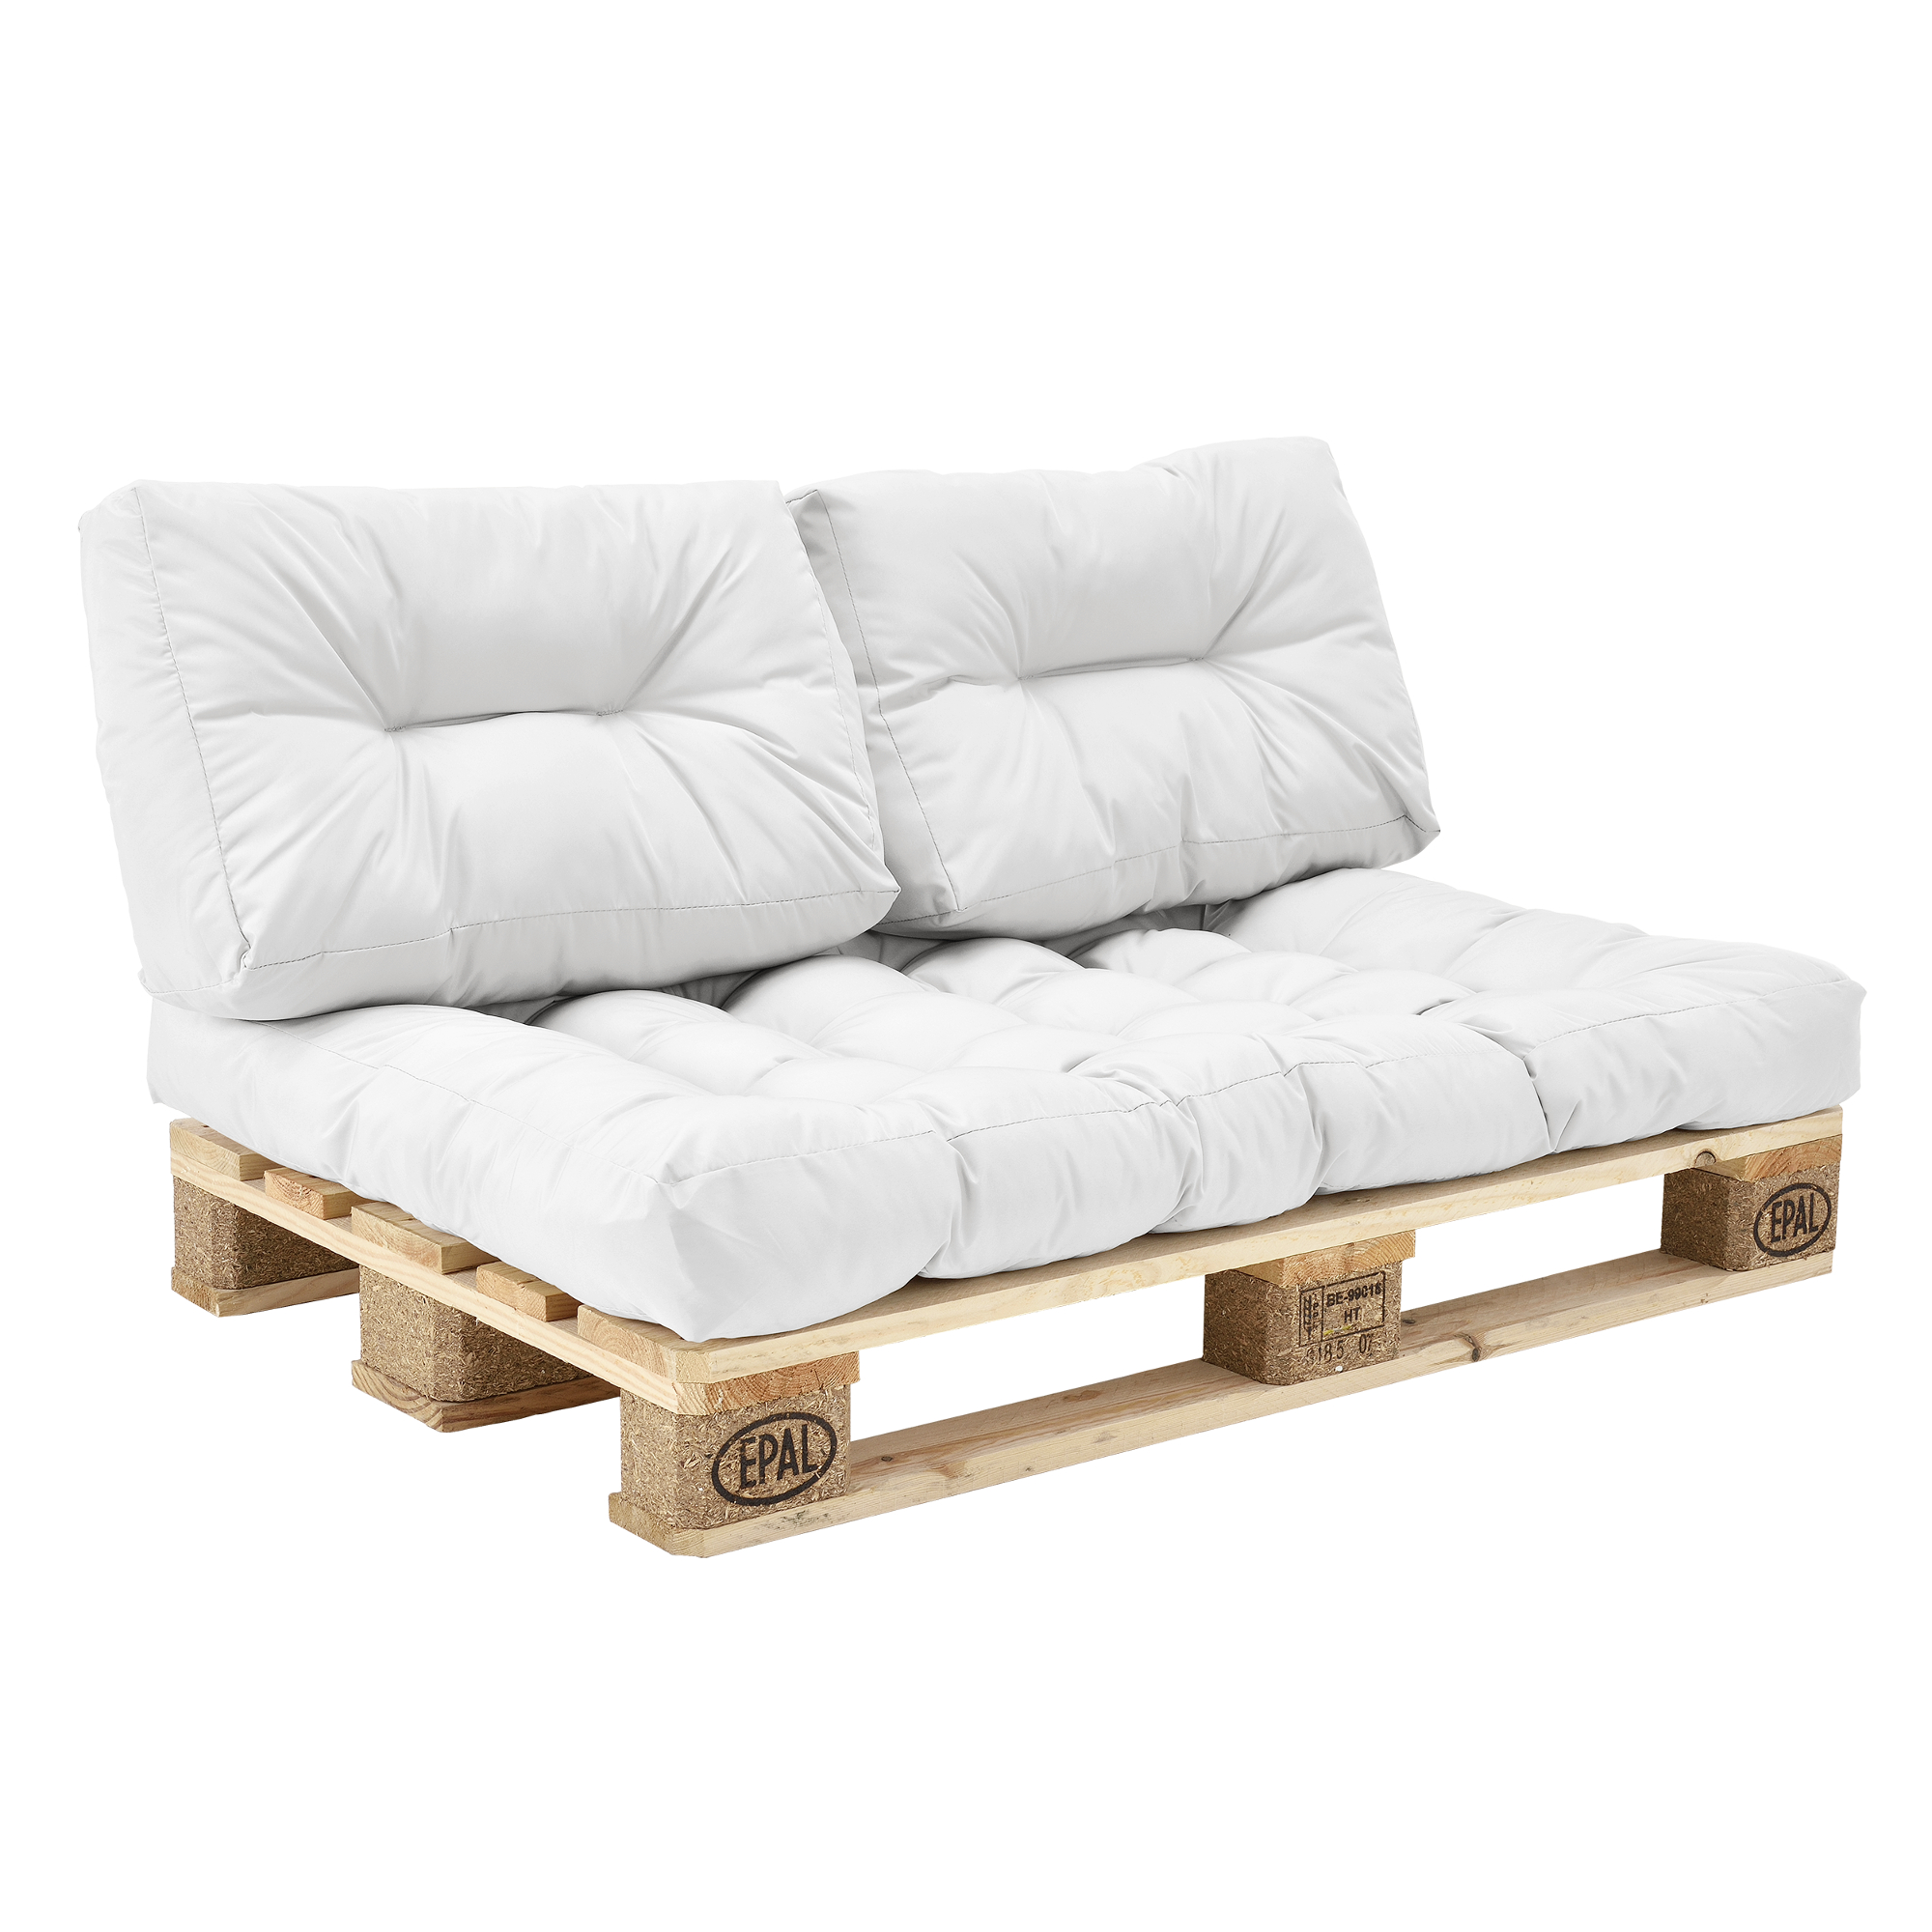 pallet sofa for sale teal leather en casa 1x seat pad cushions in outdoor pallets